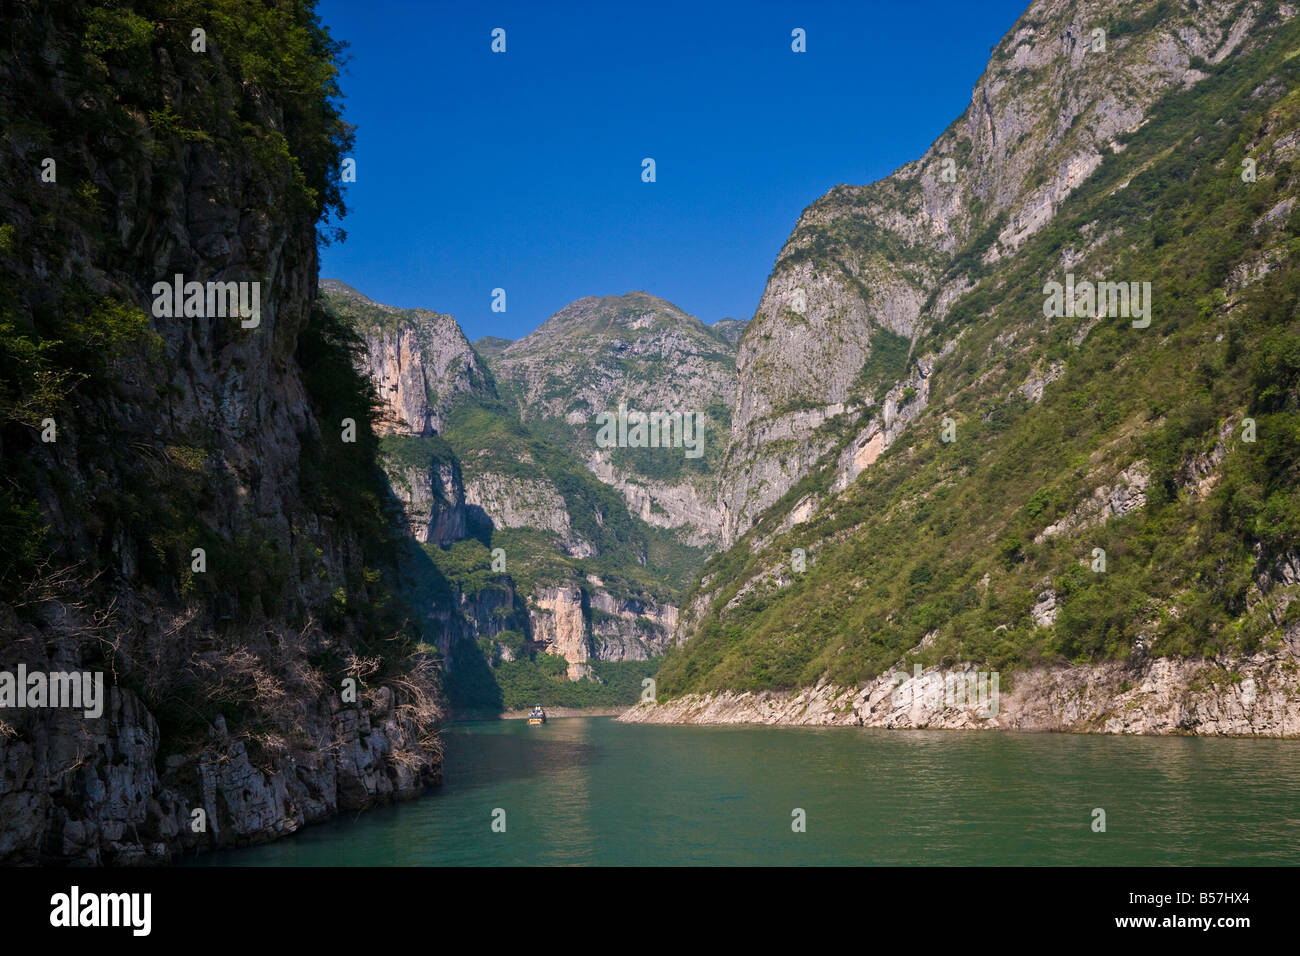 Daning River in Little Three Gorges Yangzi River China JMH3381 - Stock Image